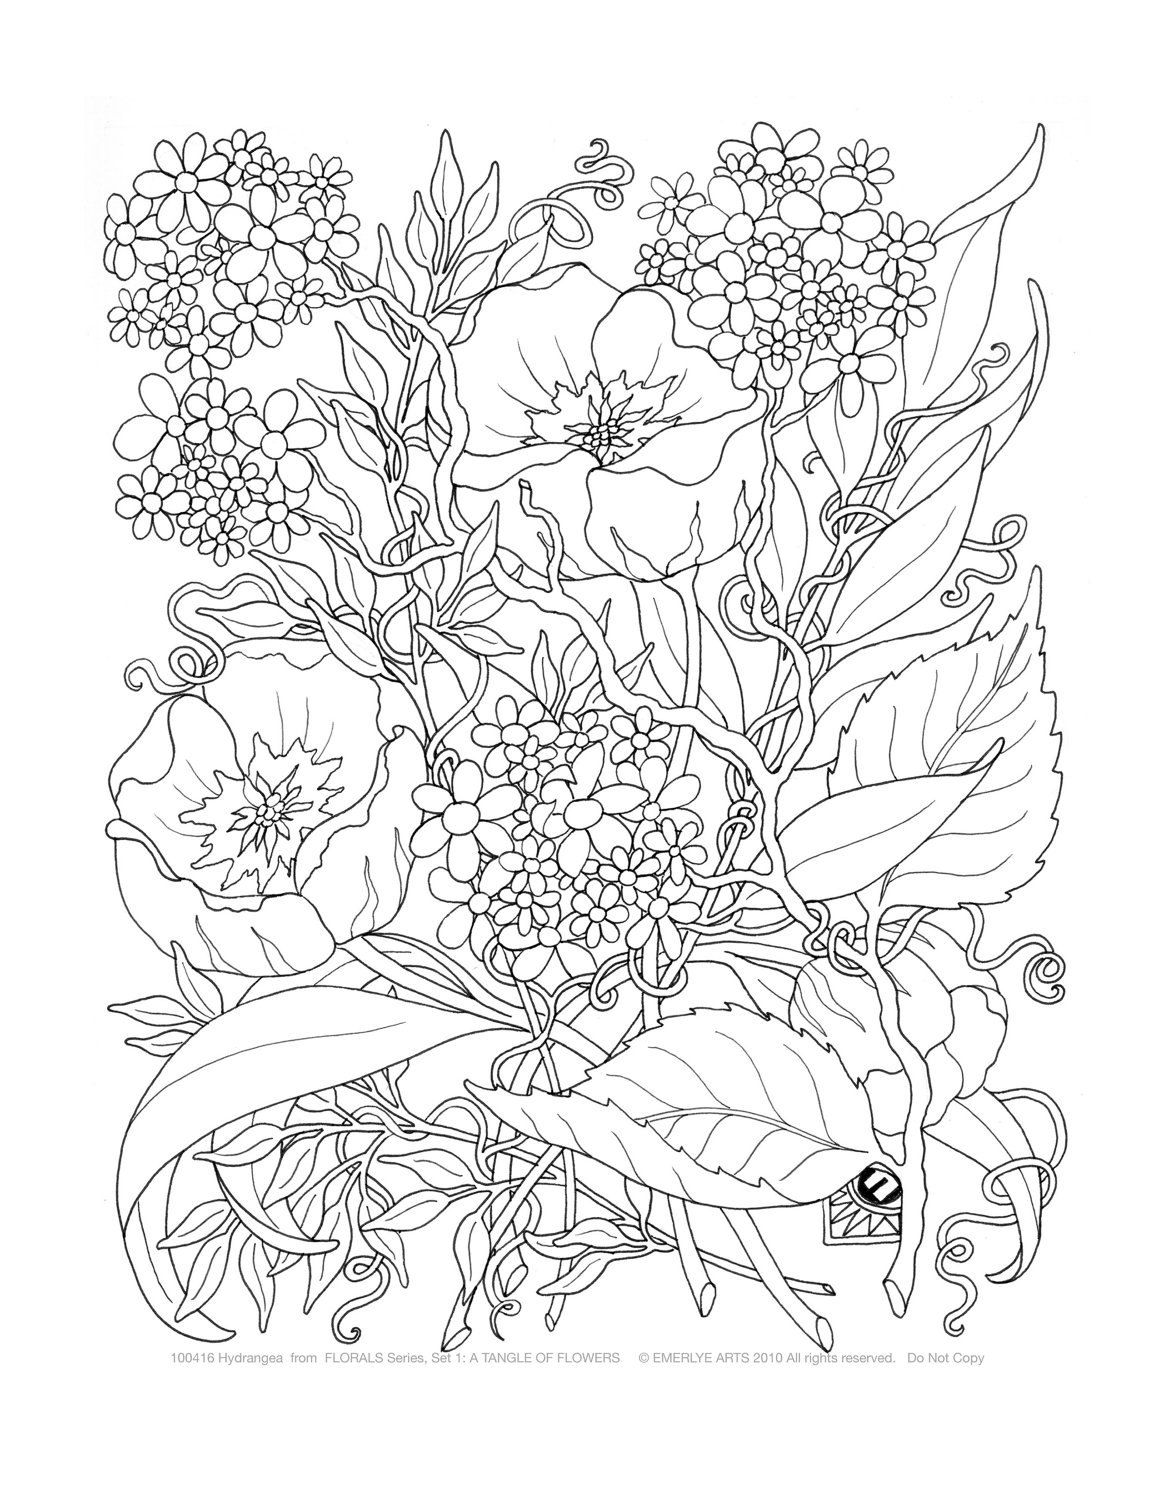 difficult coloring pages for teenagers difficult coloring pages for adults free printable for pages difficult coloring teenagers